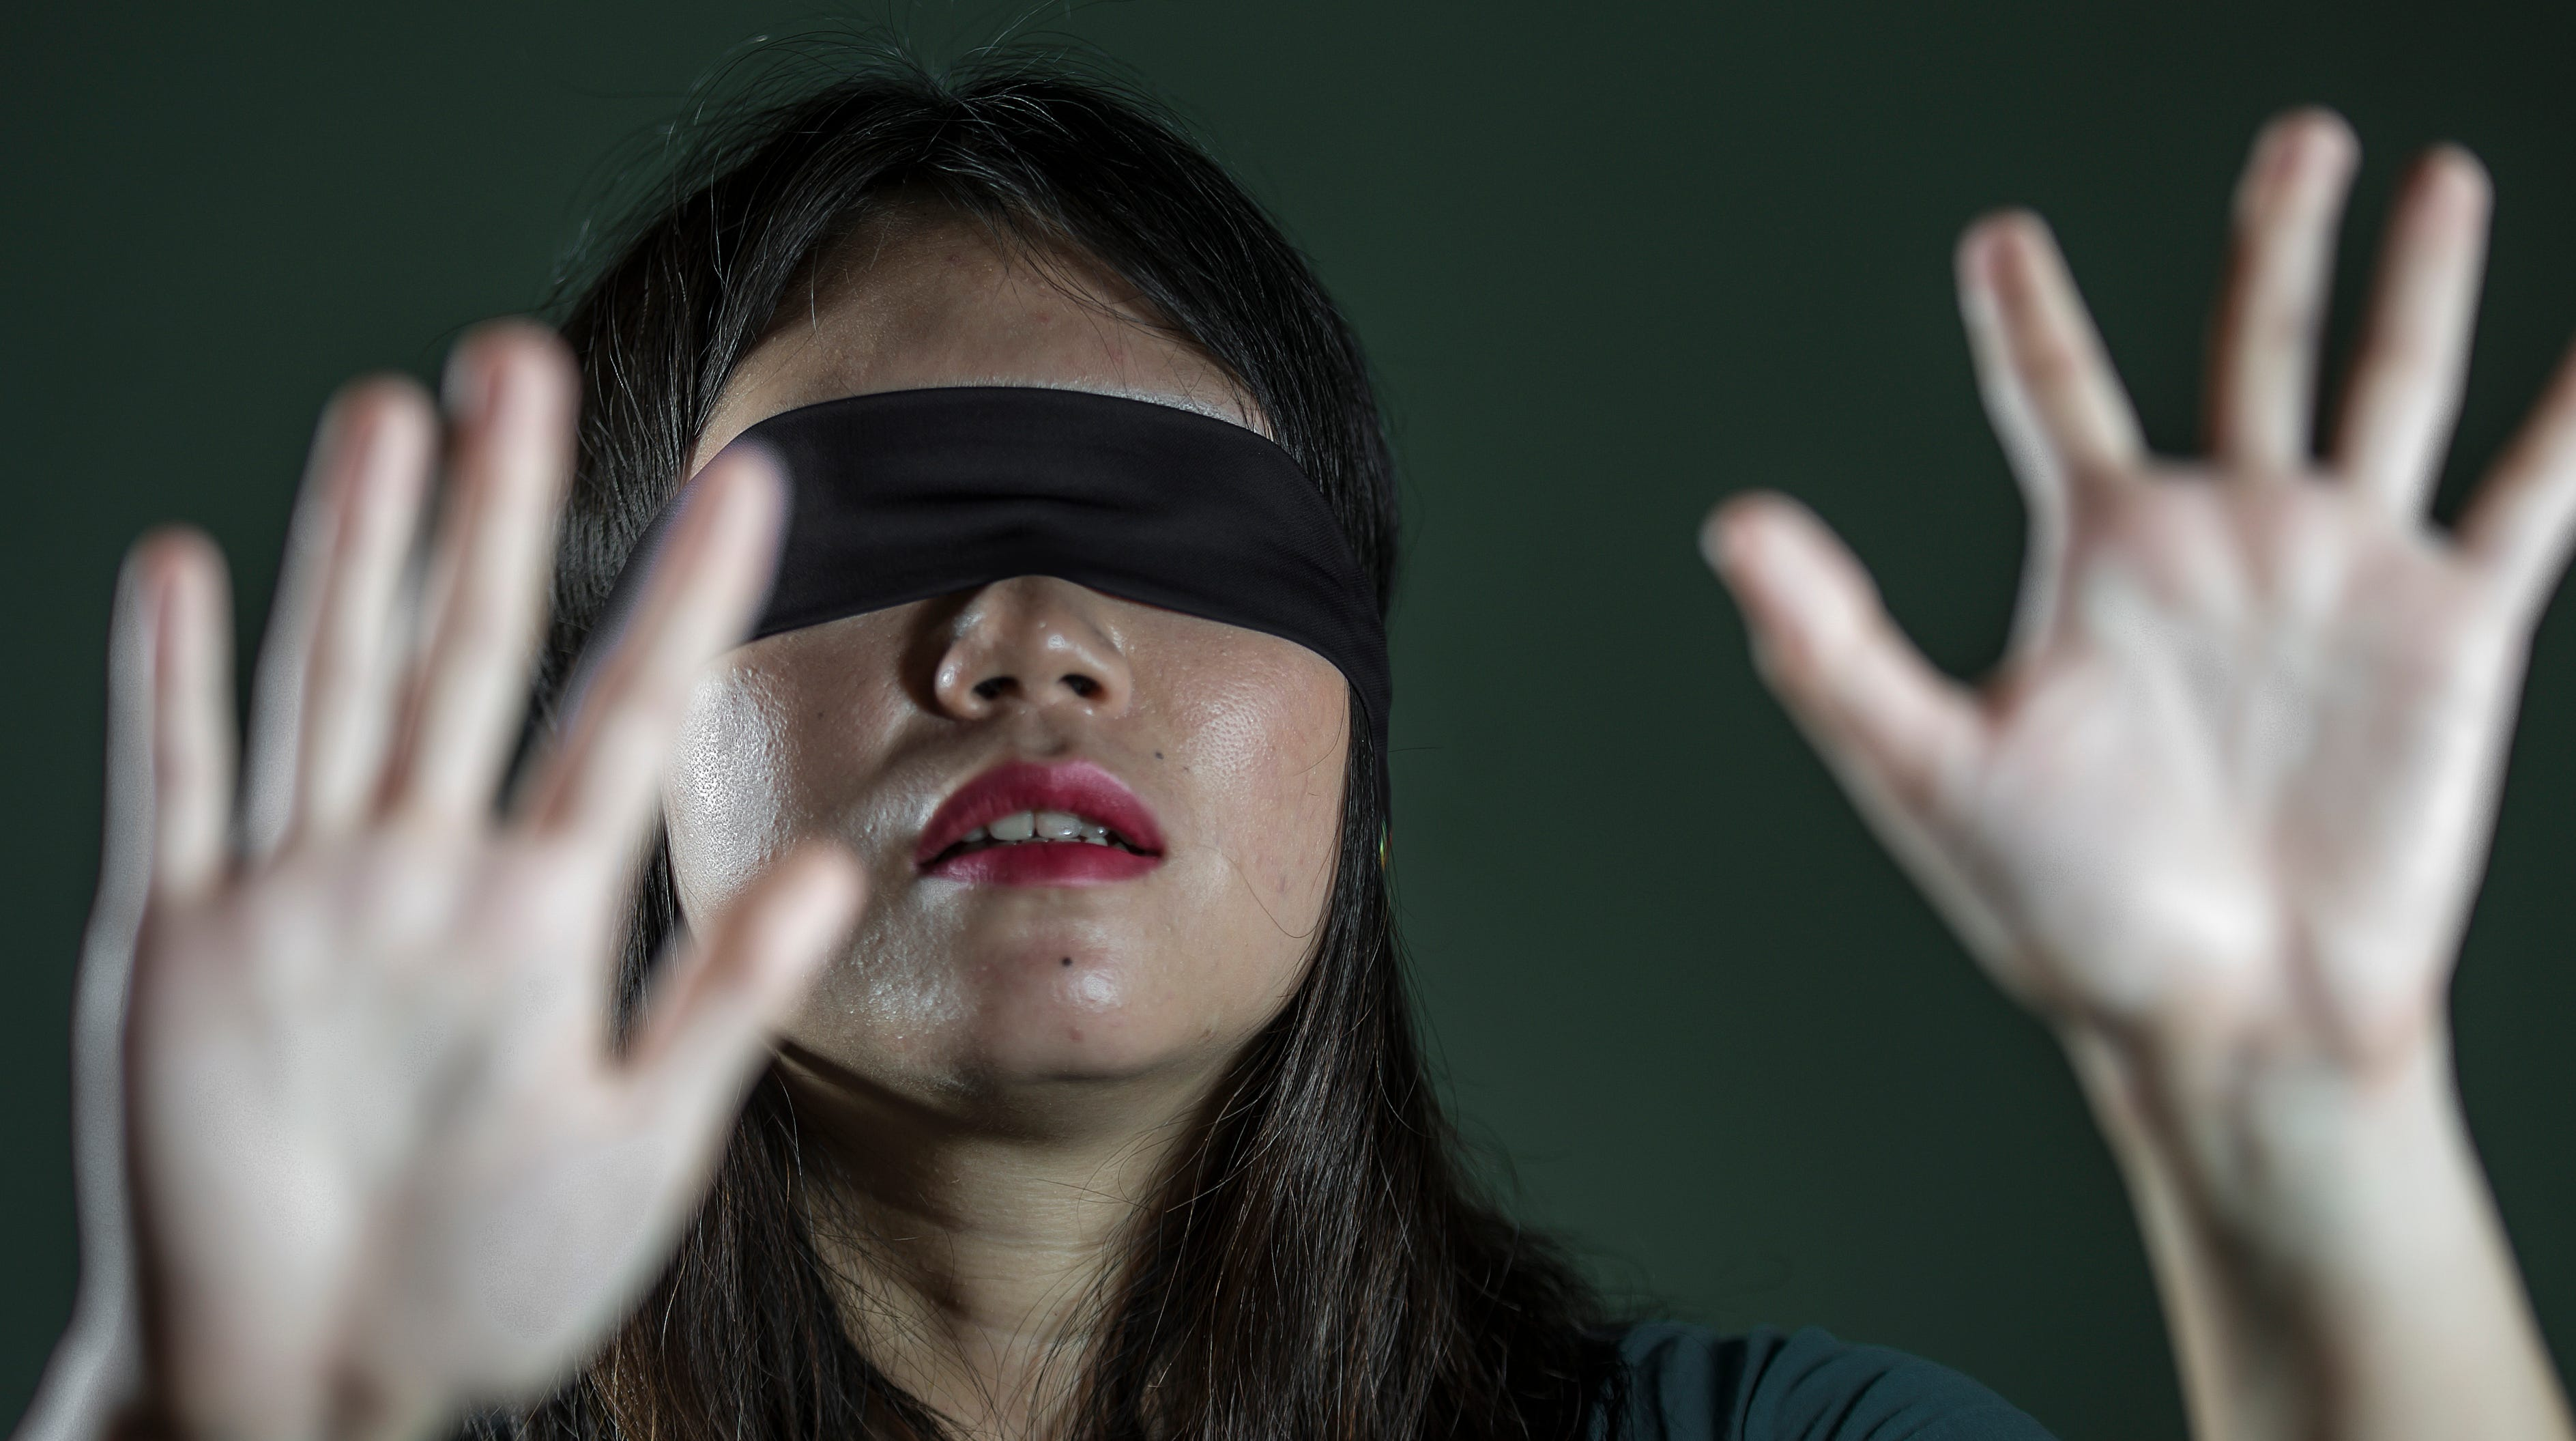 YouTube bans dangerous videos like Bird Box, Tide Pod challenges after teens get hurt